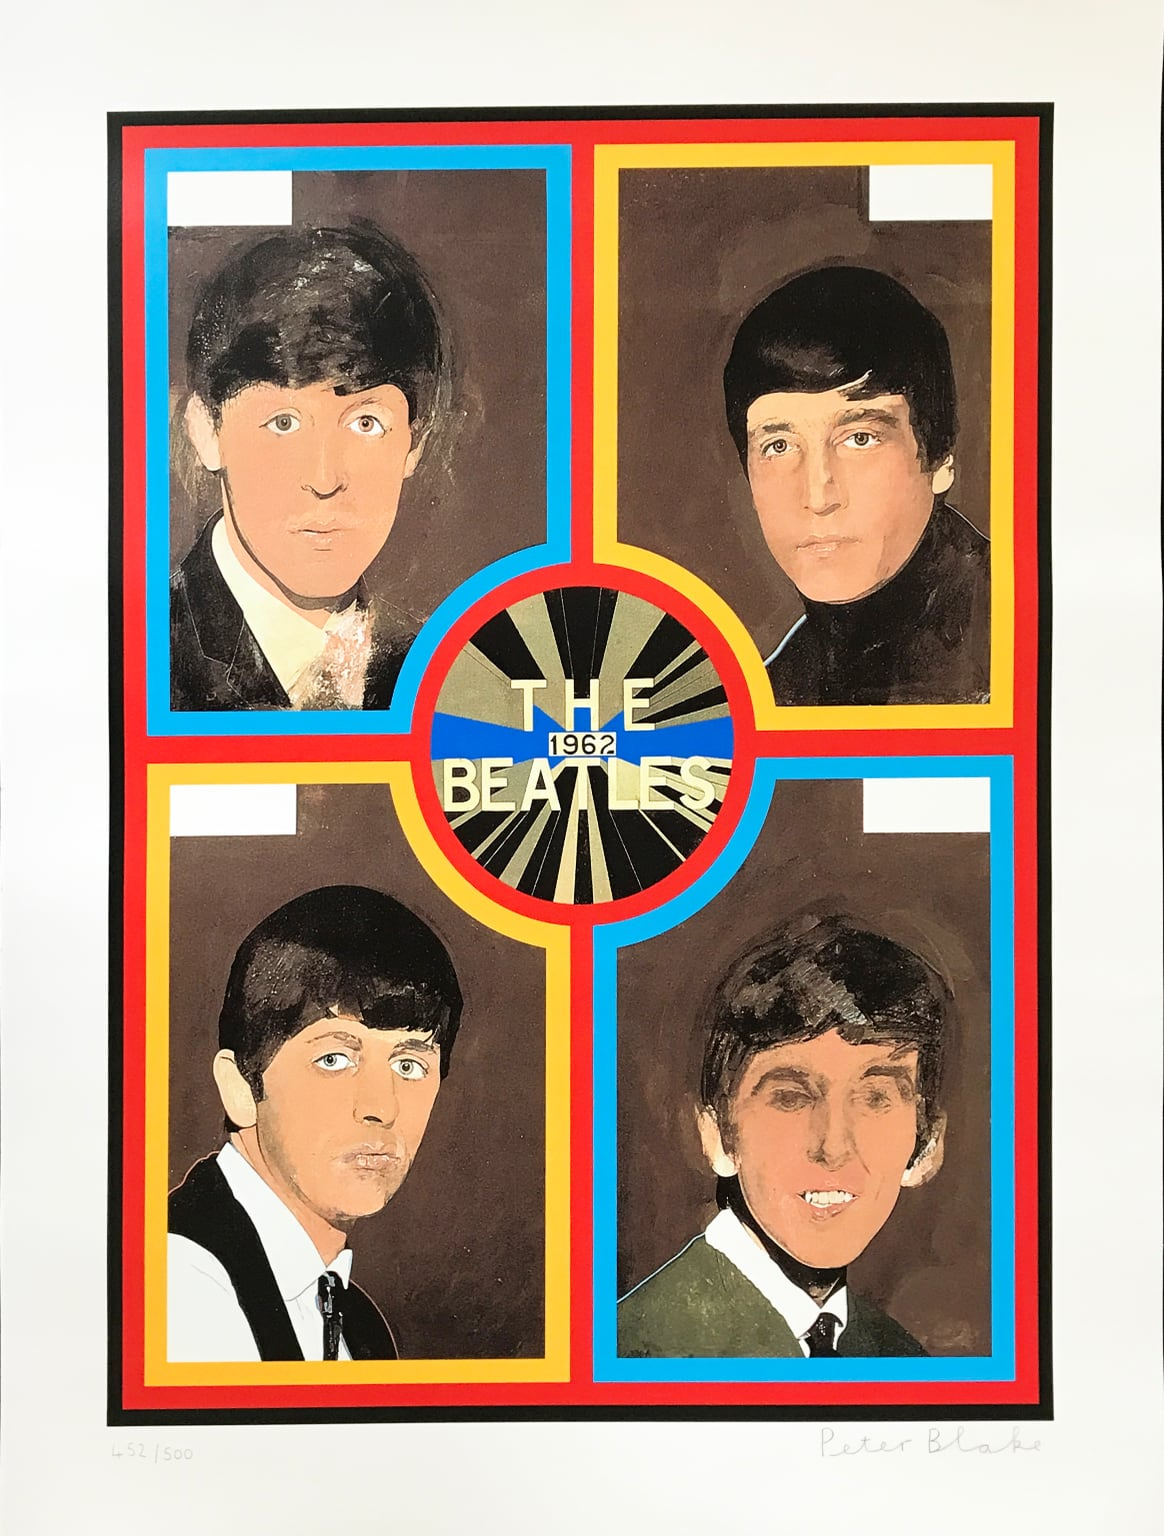 Peter Blake - The Beatles, 1962